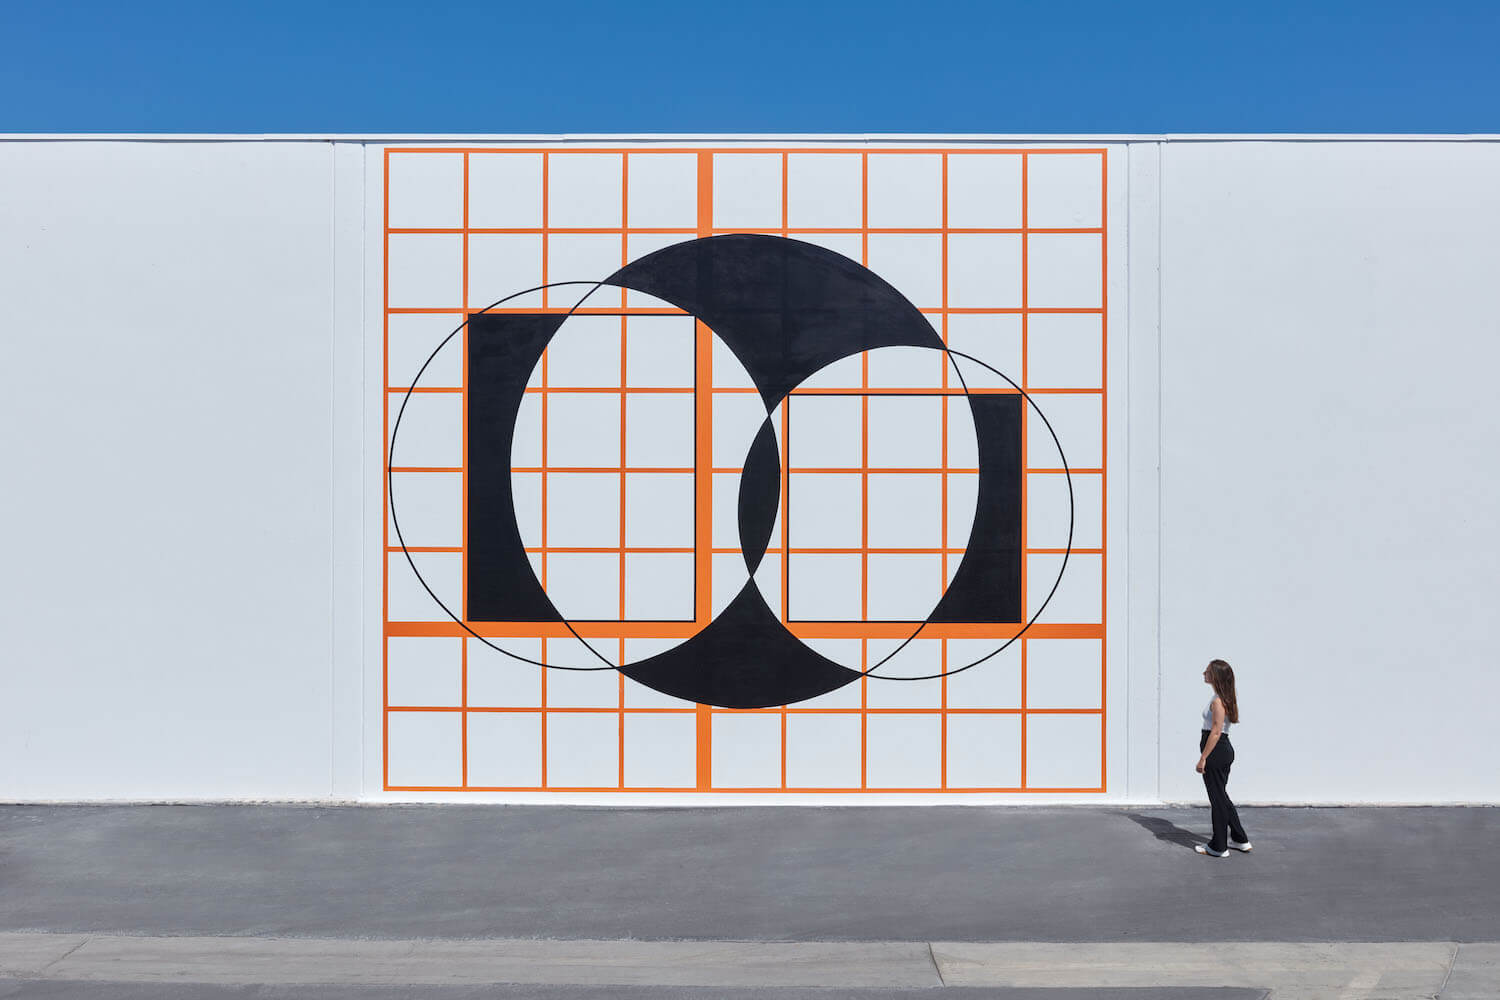 Horwitz, Language Series — 3 Circles and 2 Squares, 2005, 2021 (CH 21.002) A